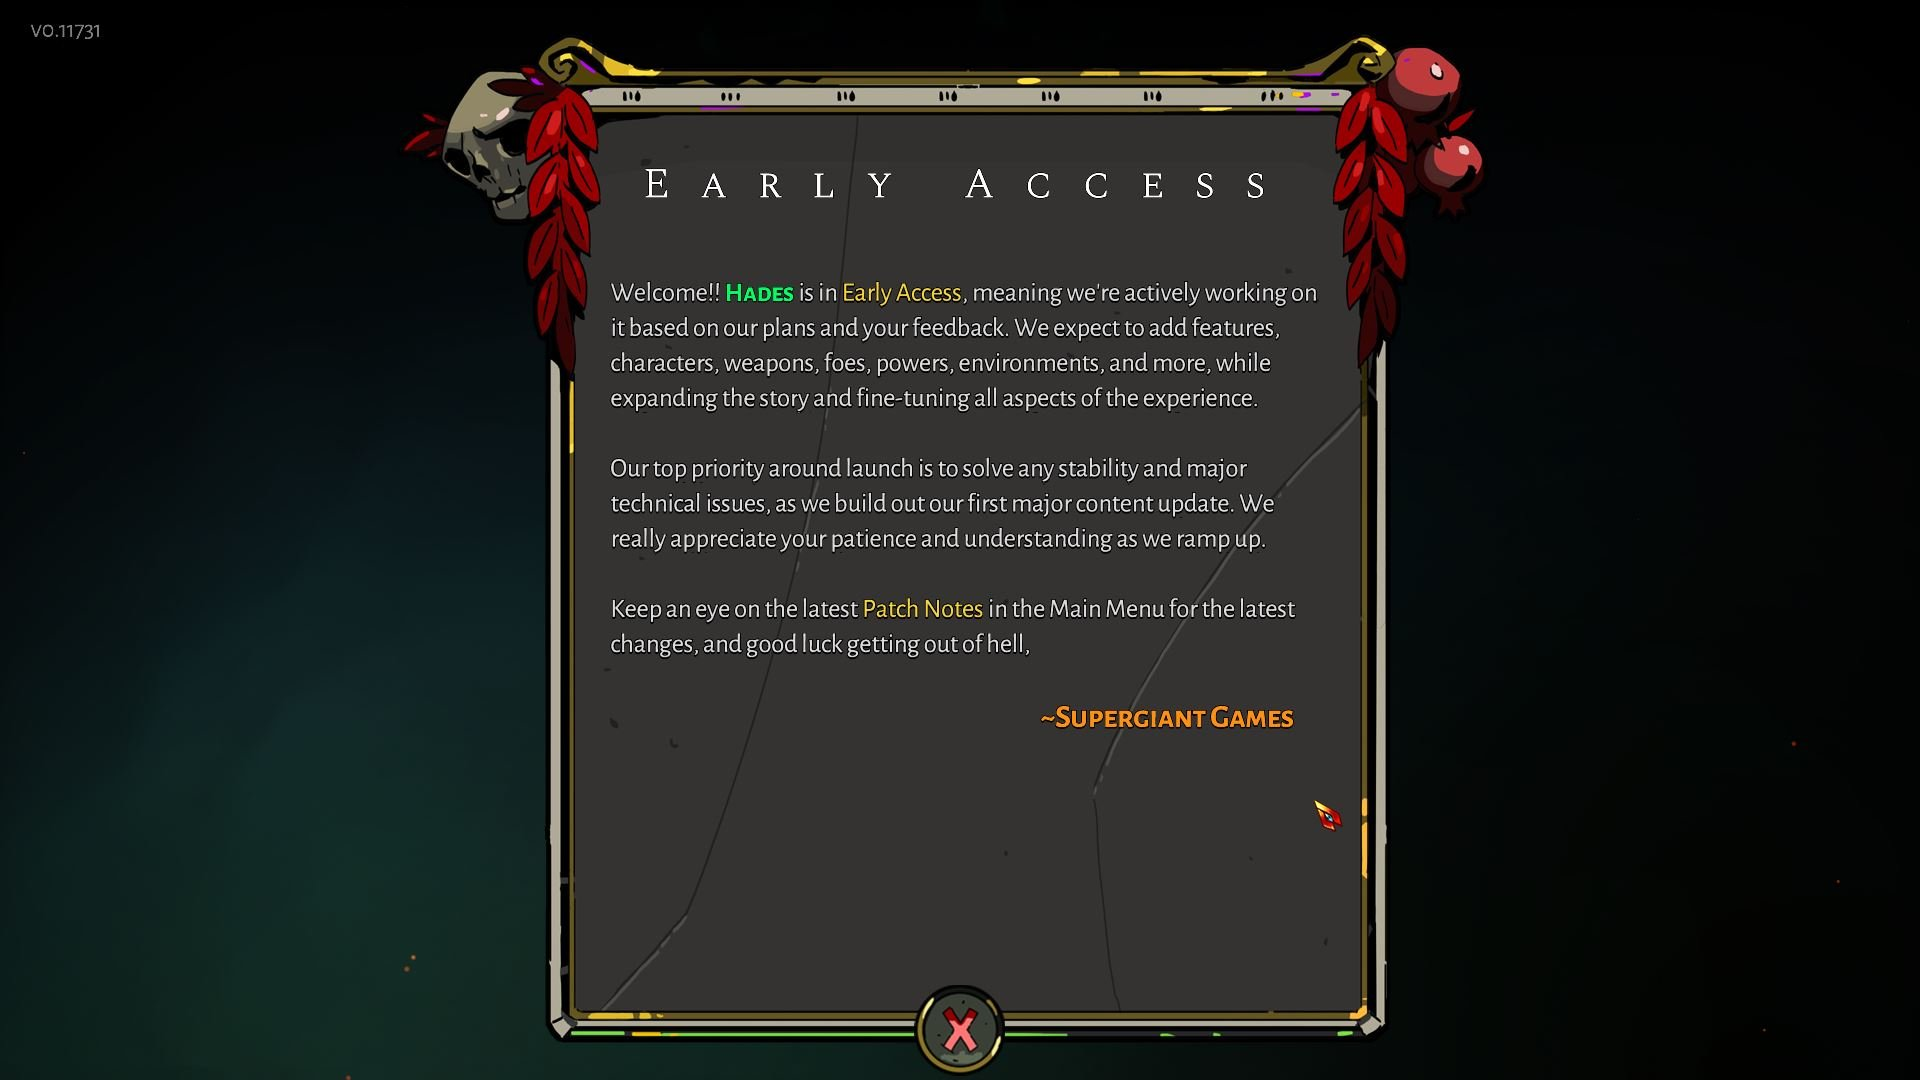 Hades Early Access message